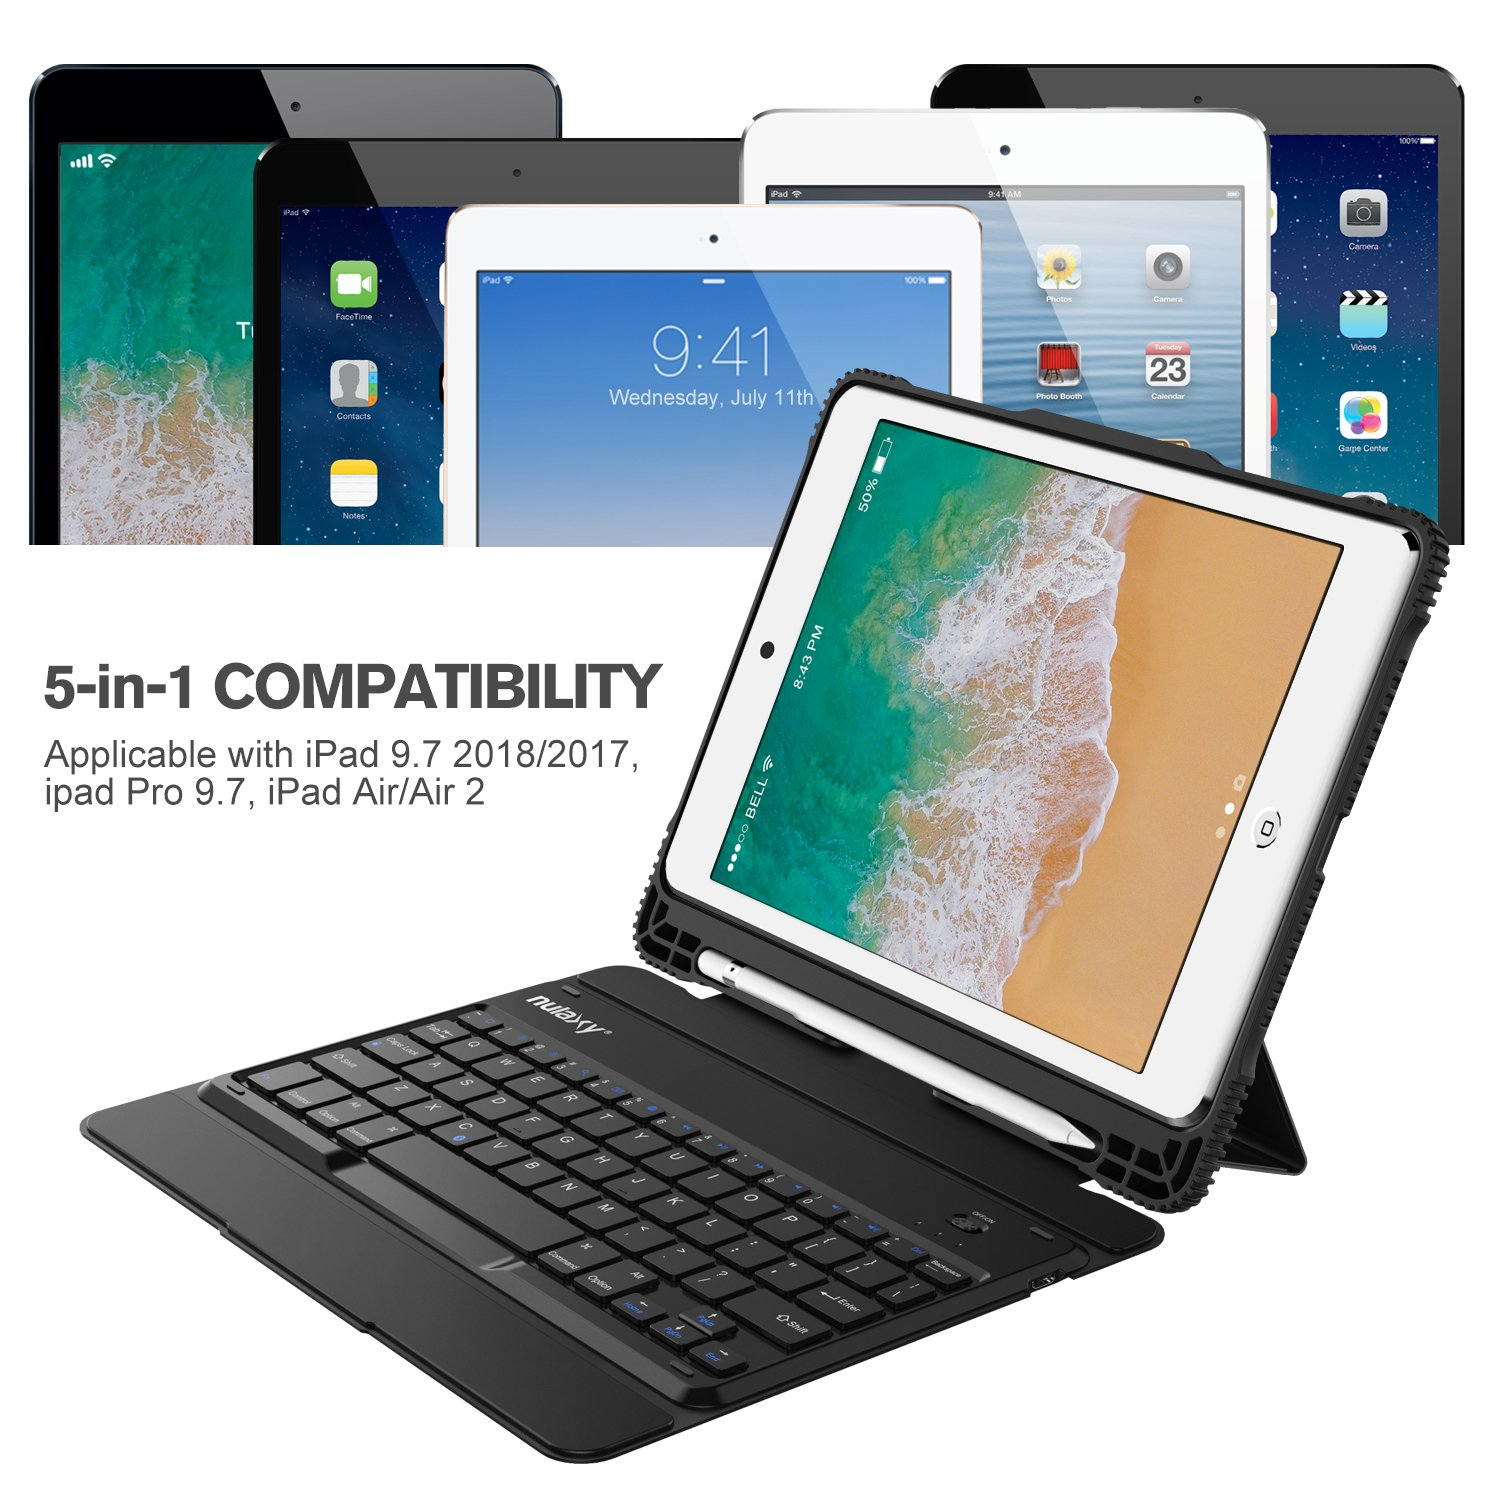 Nulaxy iPad Keyboard Case Compatible with iPad Air1/2, iPad Pro 9.7, iPad 9.7 2017/2018 - Detachable Bluetooth Keyboard/Built-in Magnetic Foldable Solid Stand with Auto Sleep/Wake - KM14 Black by Nulaxy (Image #2)